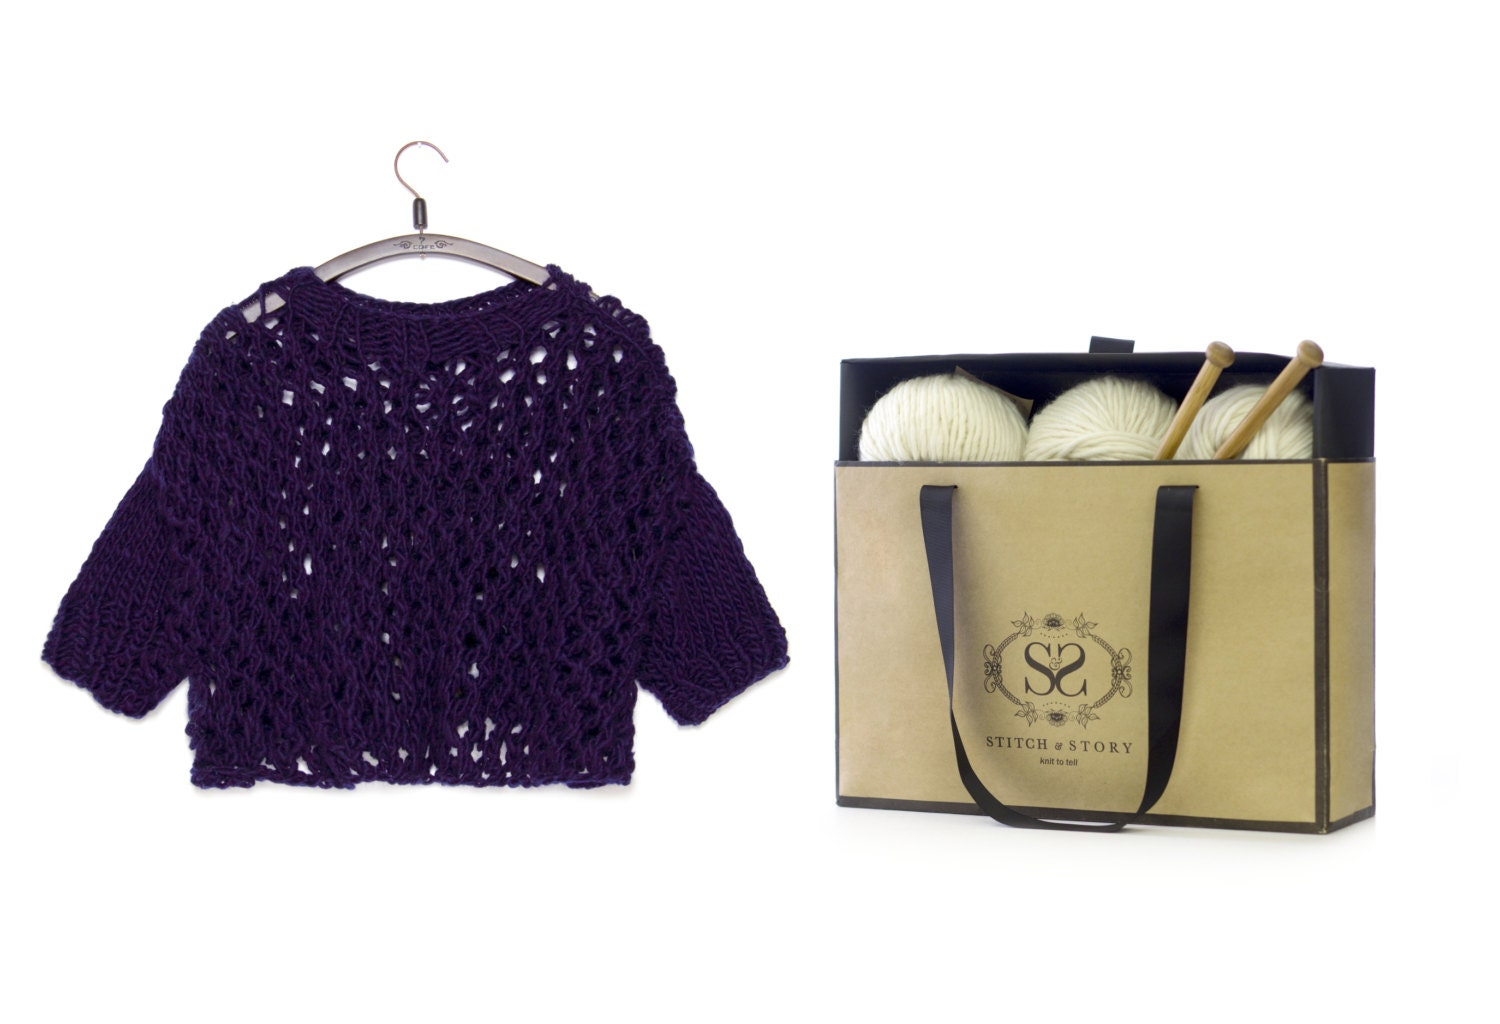 Jumper Knitting Kits Uk : Chunky lace sweater knitting kit diy craft set merino wool